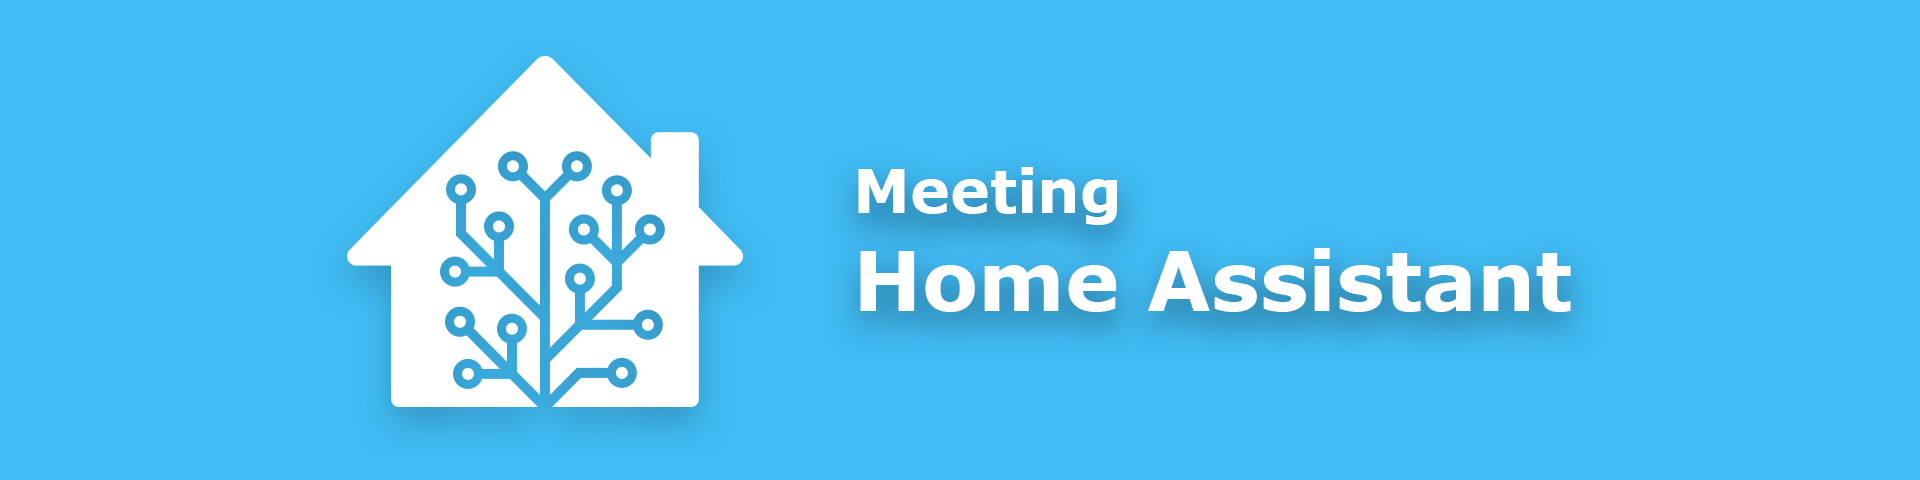 Meeting Home Assistant